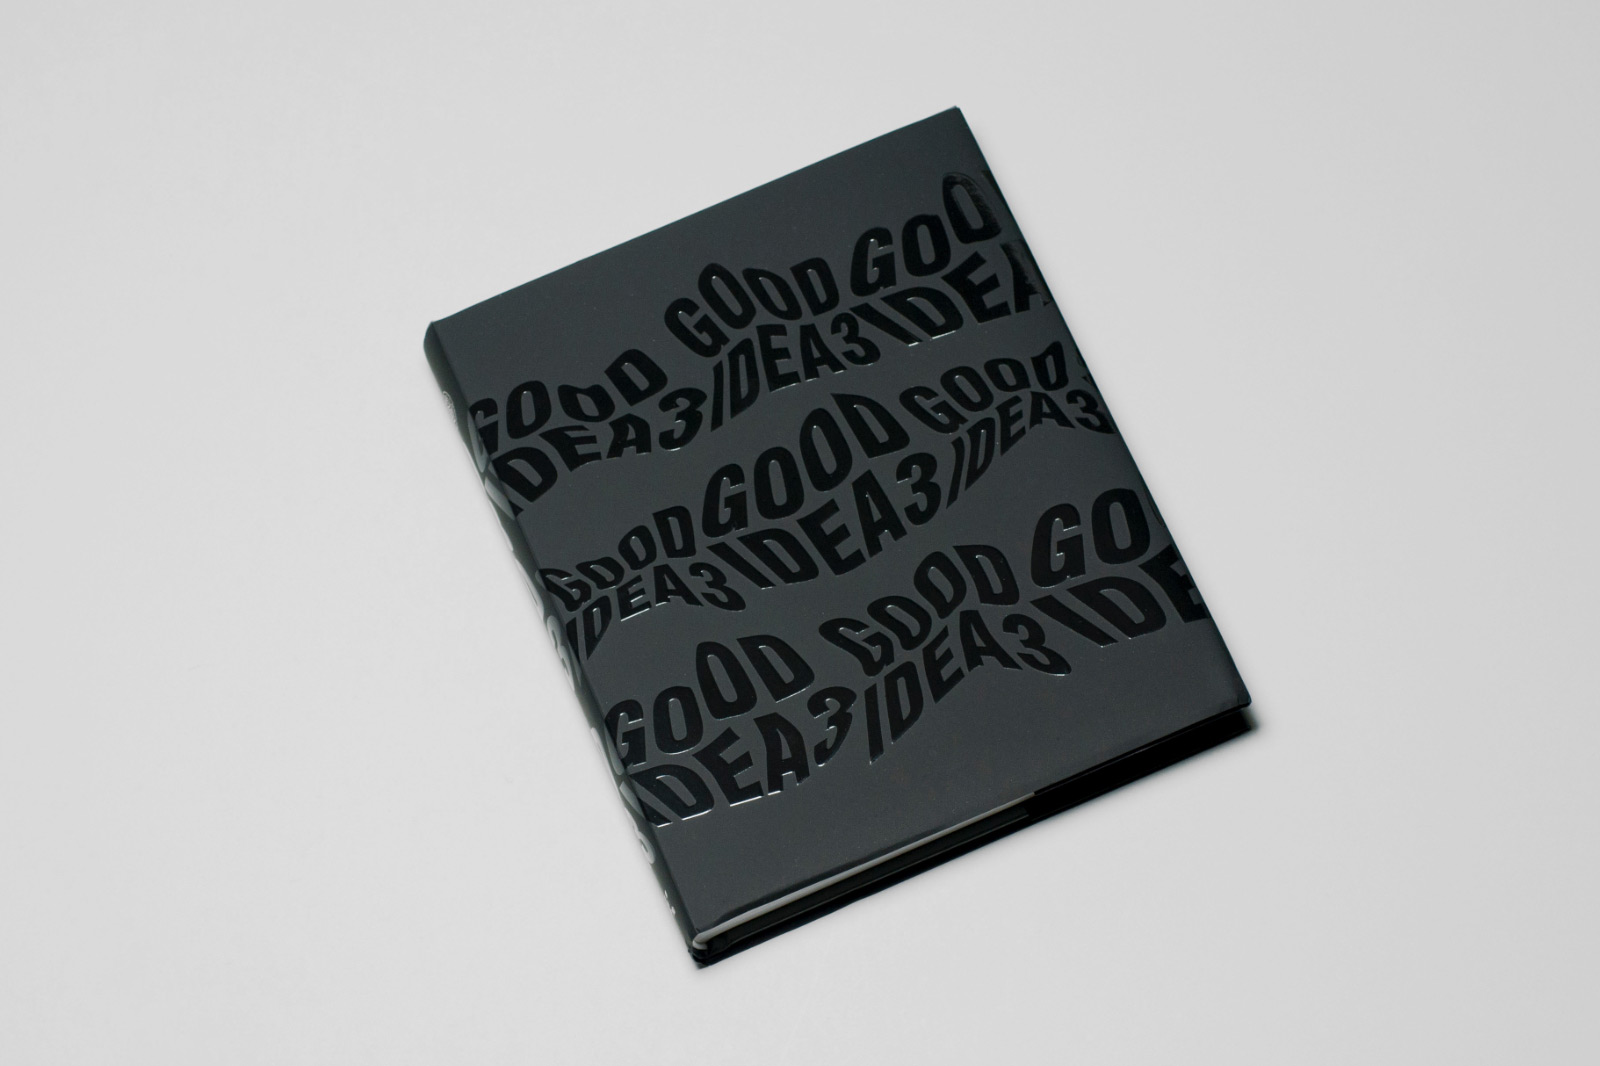 Good Idea Three, Volume 3, 2014 published by Long Sea International Book Co. and Hightone Book.